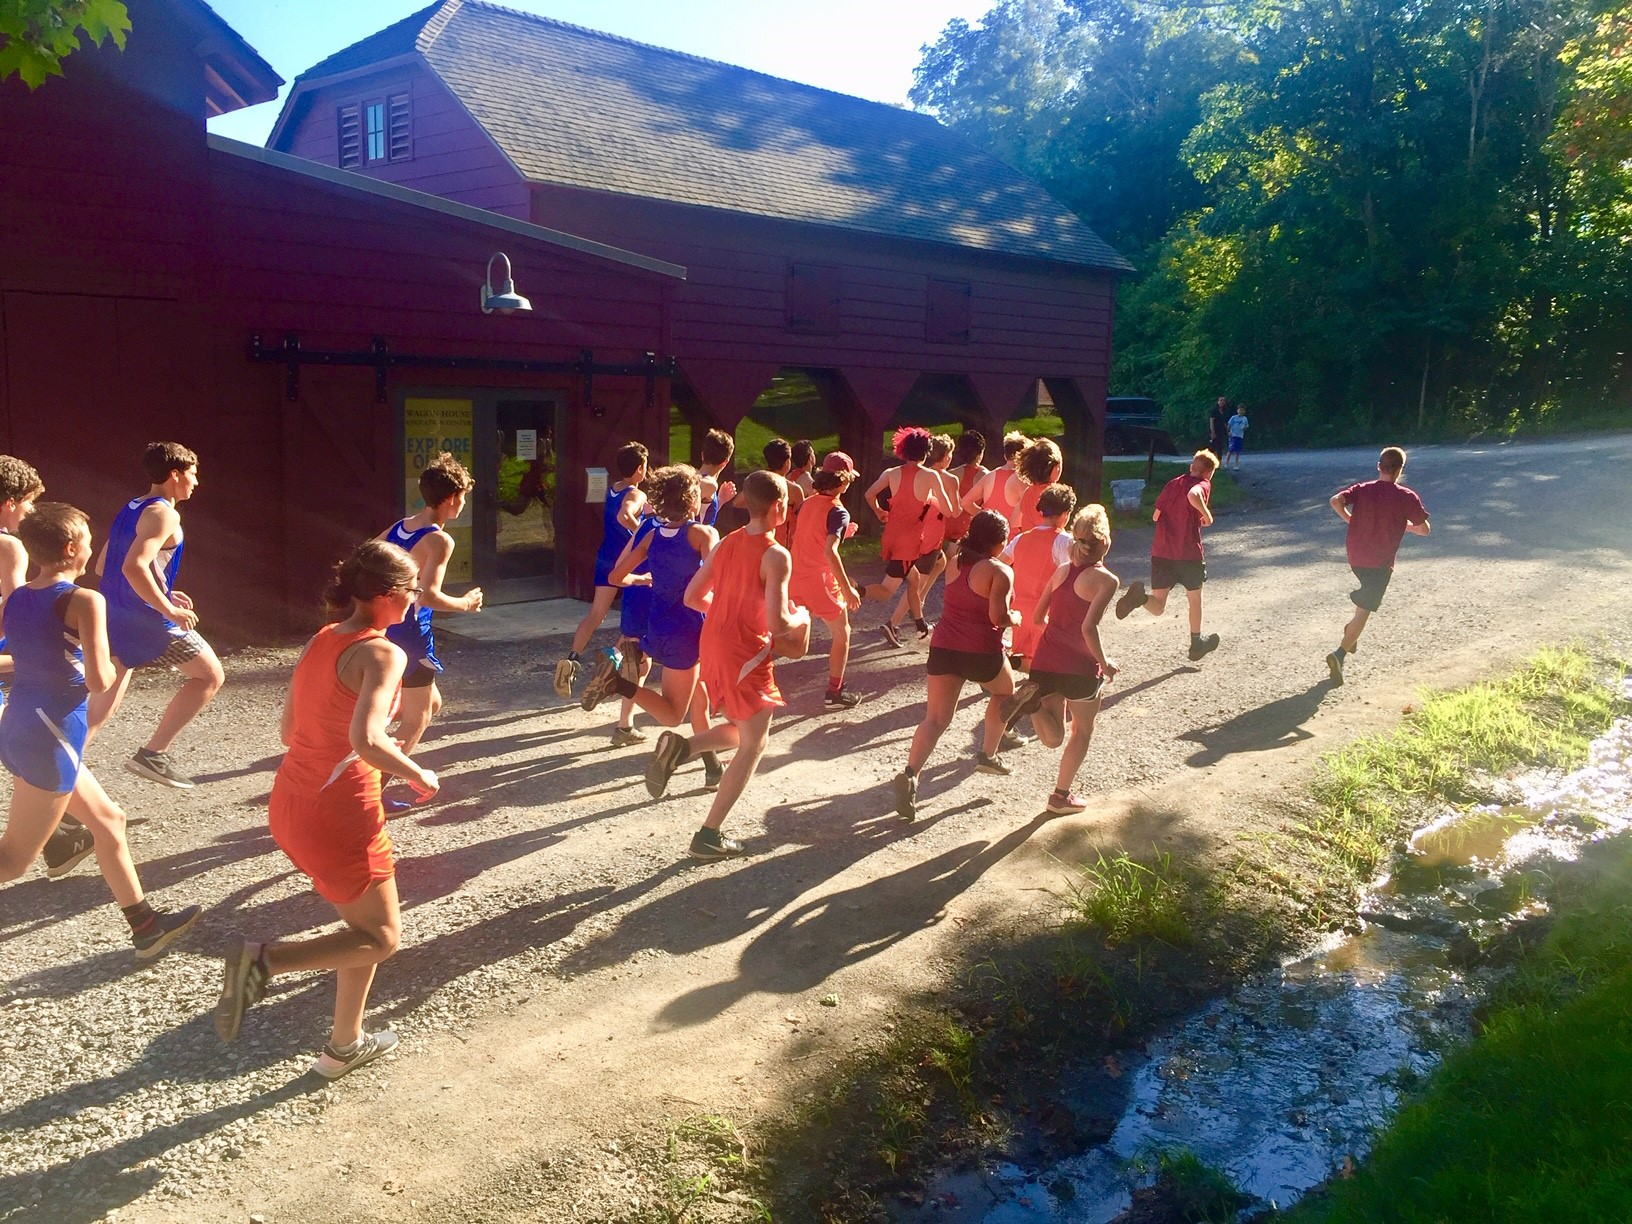 Runners on their way at first cross country meet of the season